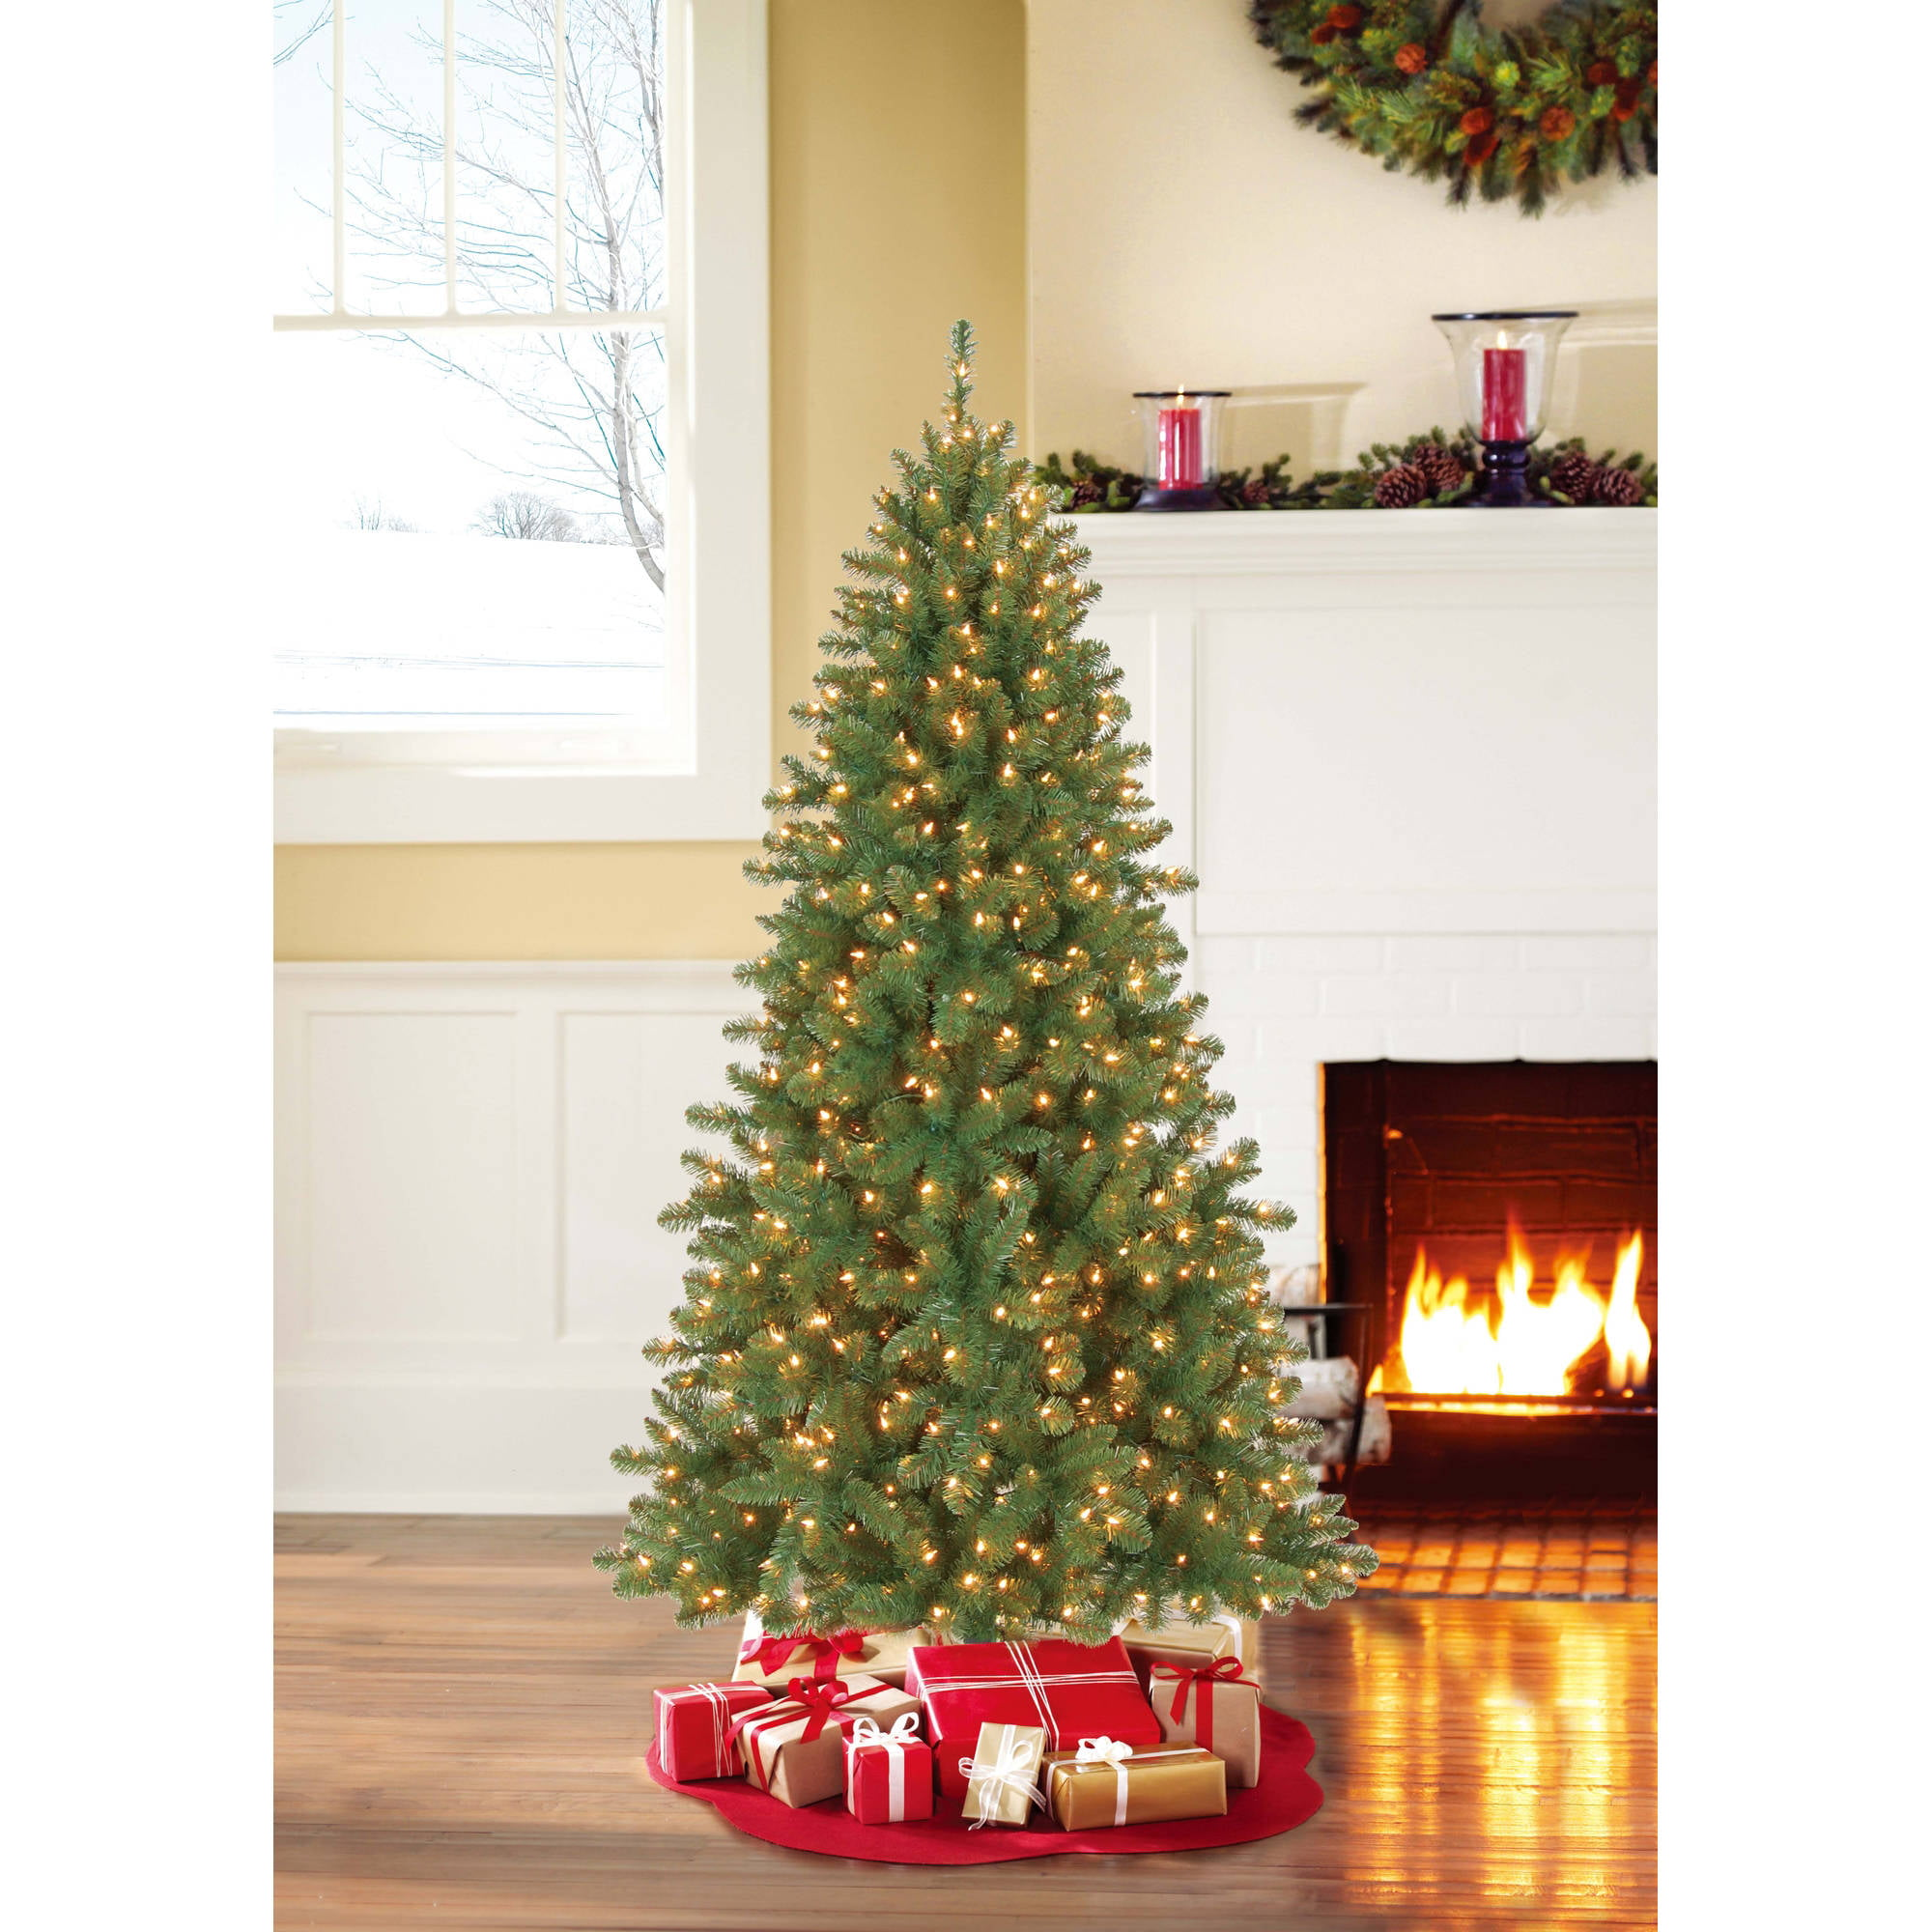 best choice products 75ft pre lit spruce hinged artificial christmas tree w 550 led lights foldable stand green walmartcom - Pre Lit Artificial Christmas Trees Sale